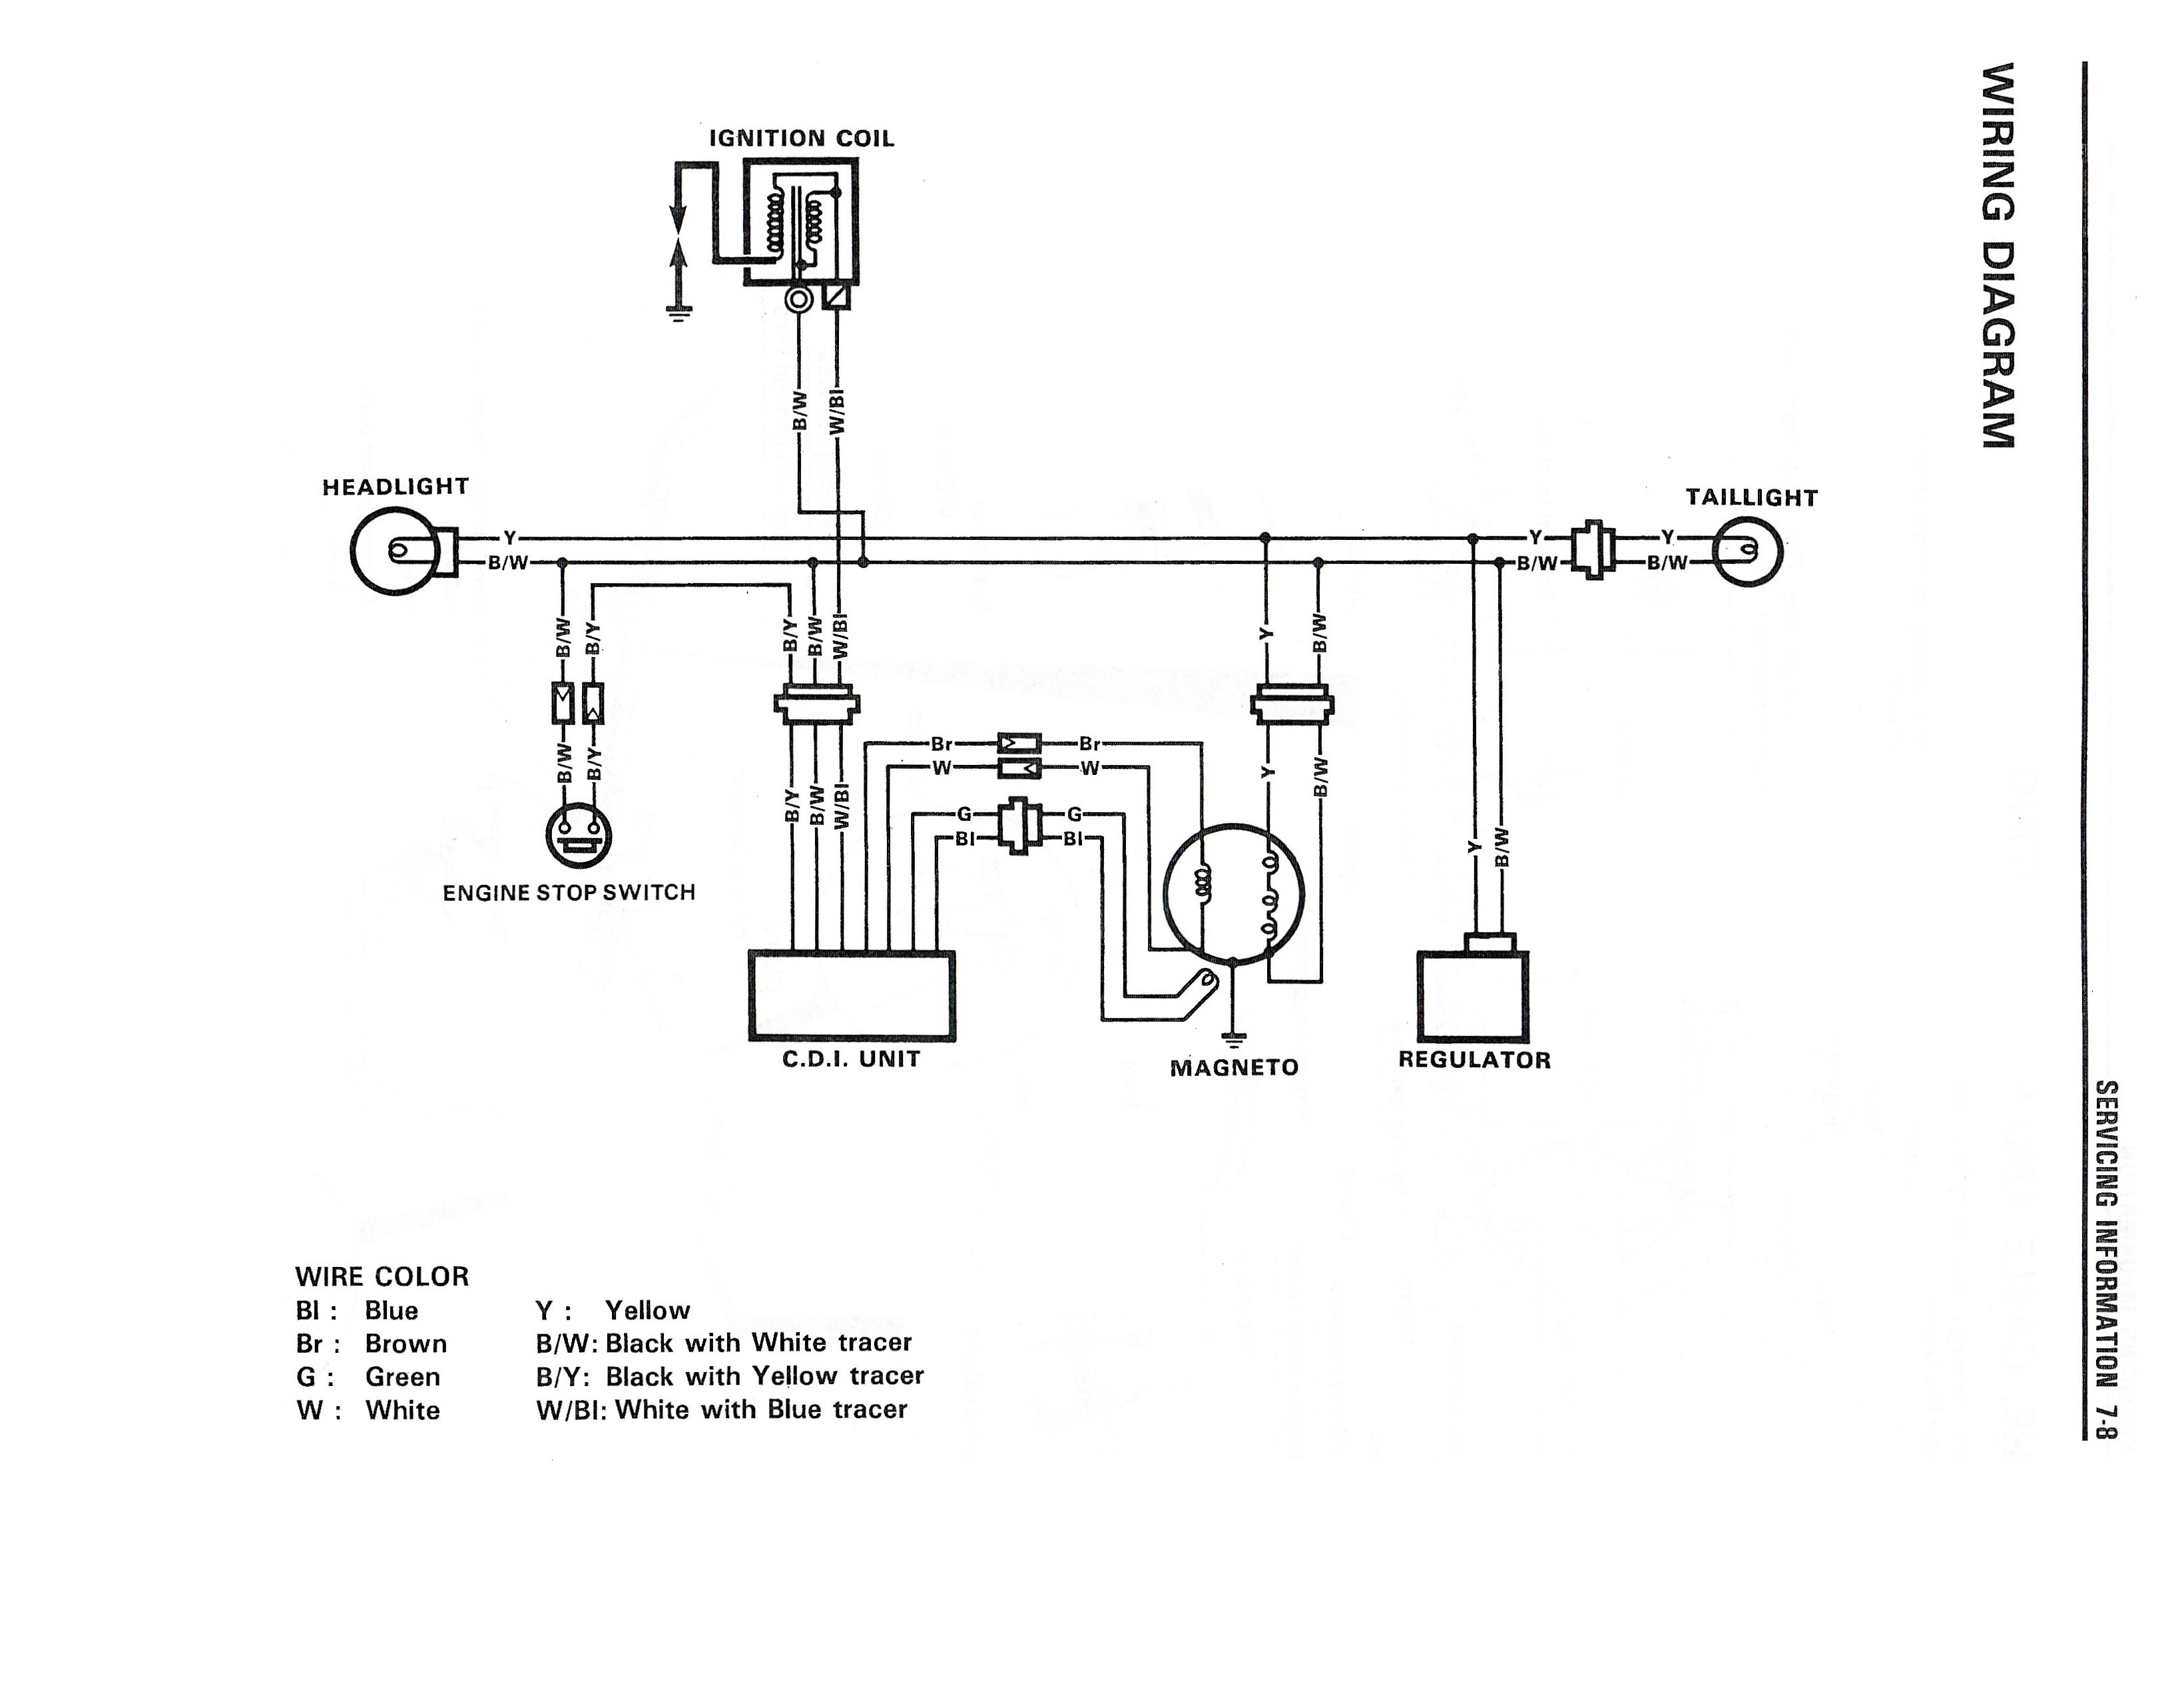 Wiring Diagram For The Dr350  1990 And Later Models  - Suzuki Parts - Suzuki Dr350